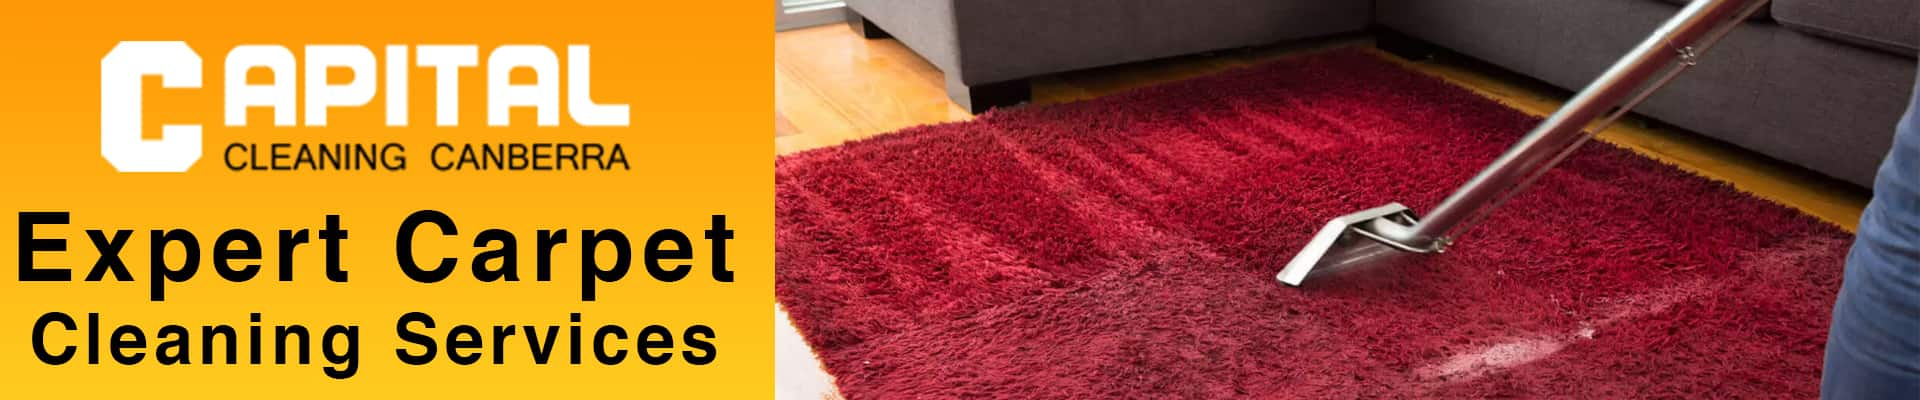 Expert Carpet Cleaning Services Palmerston